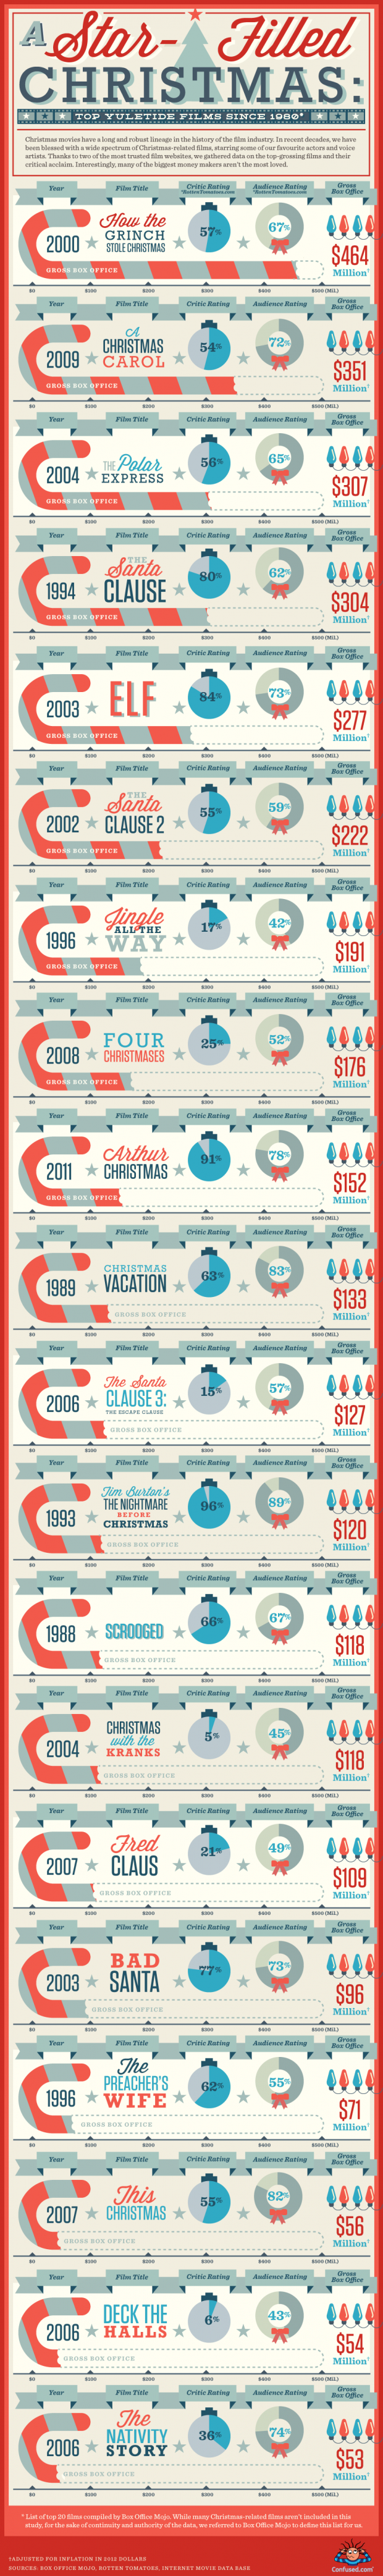 Top Christmas Movies [Infographic]